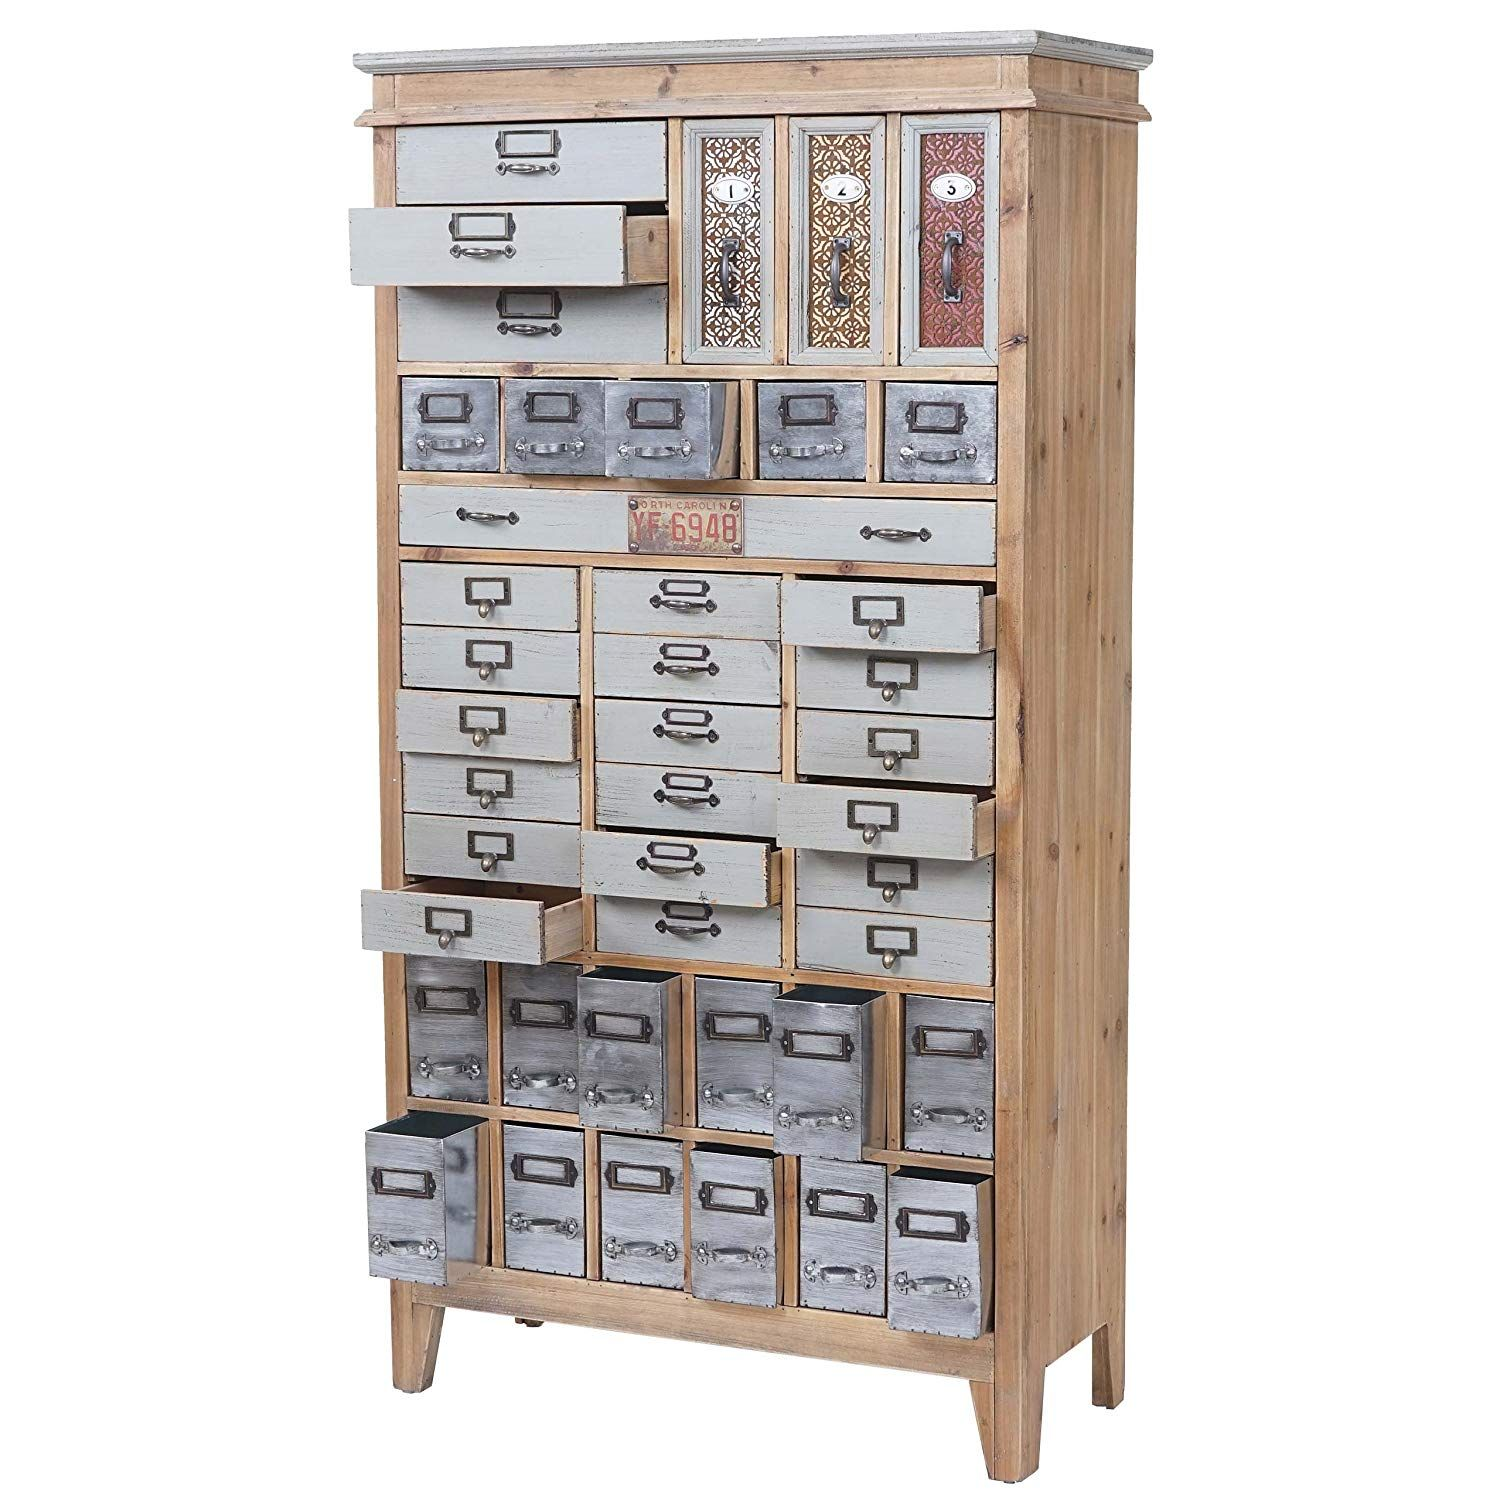 Apothecary Cabinet Hwc A43 Chest Of Drawers Solid Fir Wood Vintage Shabby Look 152x81x34 Cm - Kleinmöbel Flur